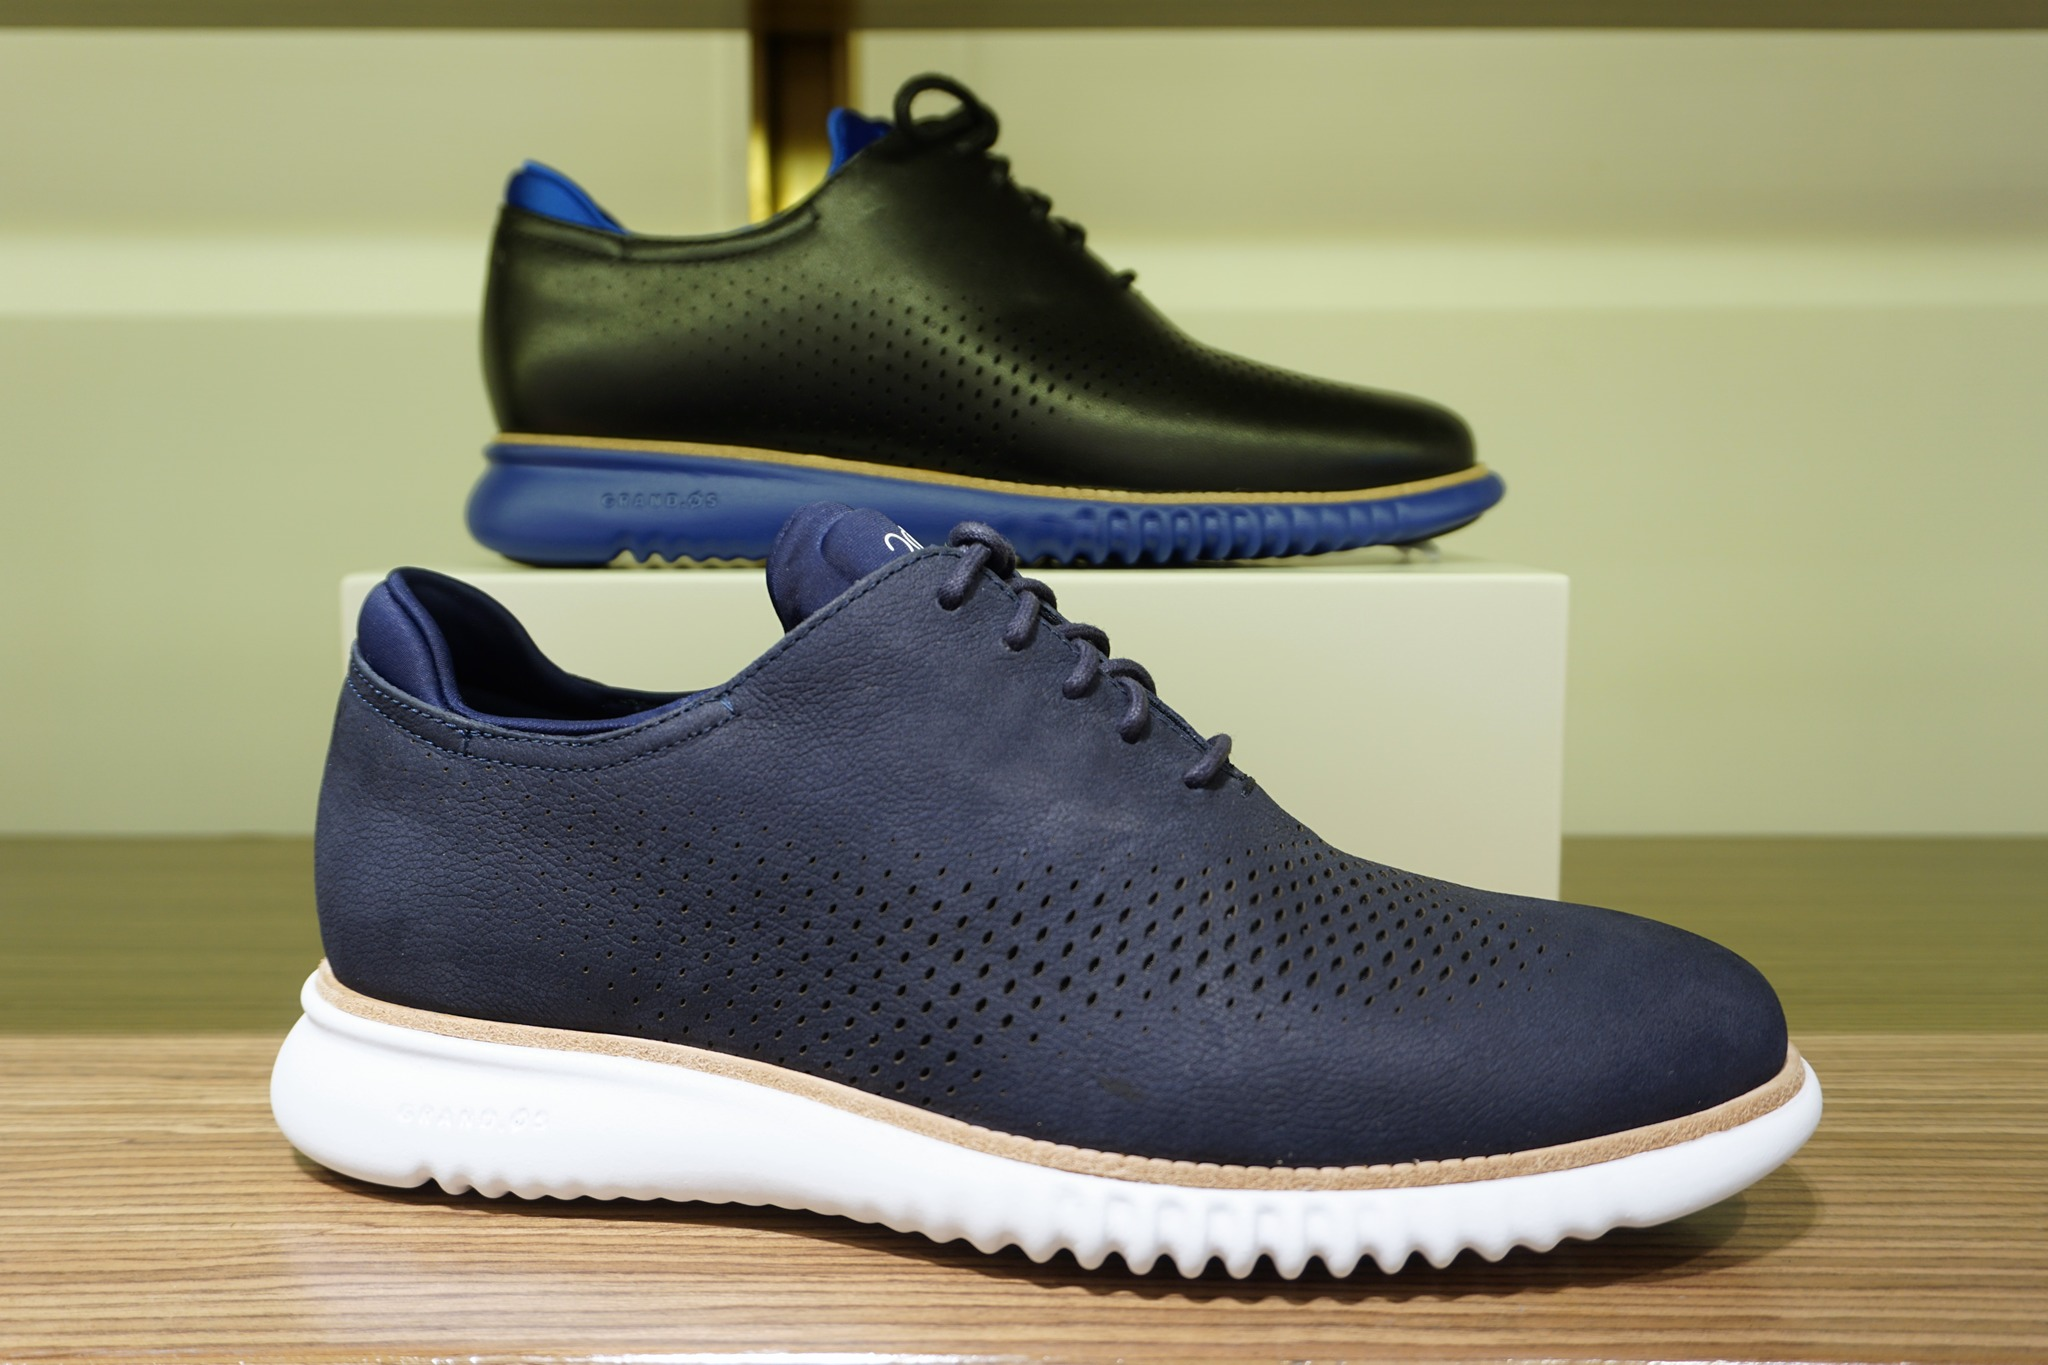 What Are Some Preppy Shoe Brands